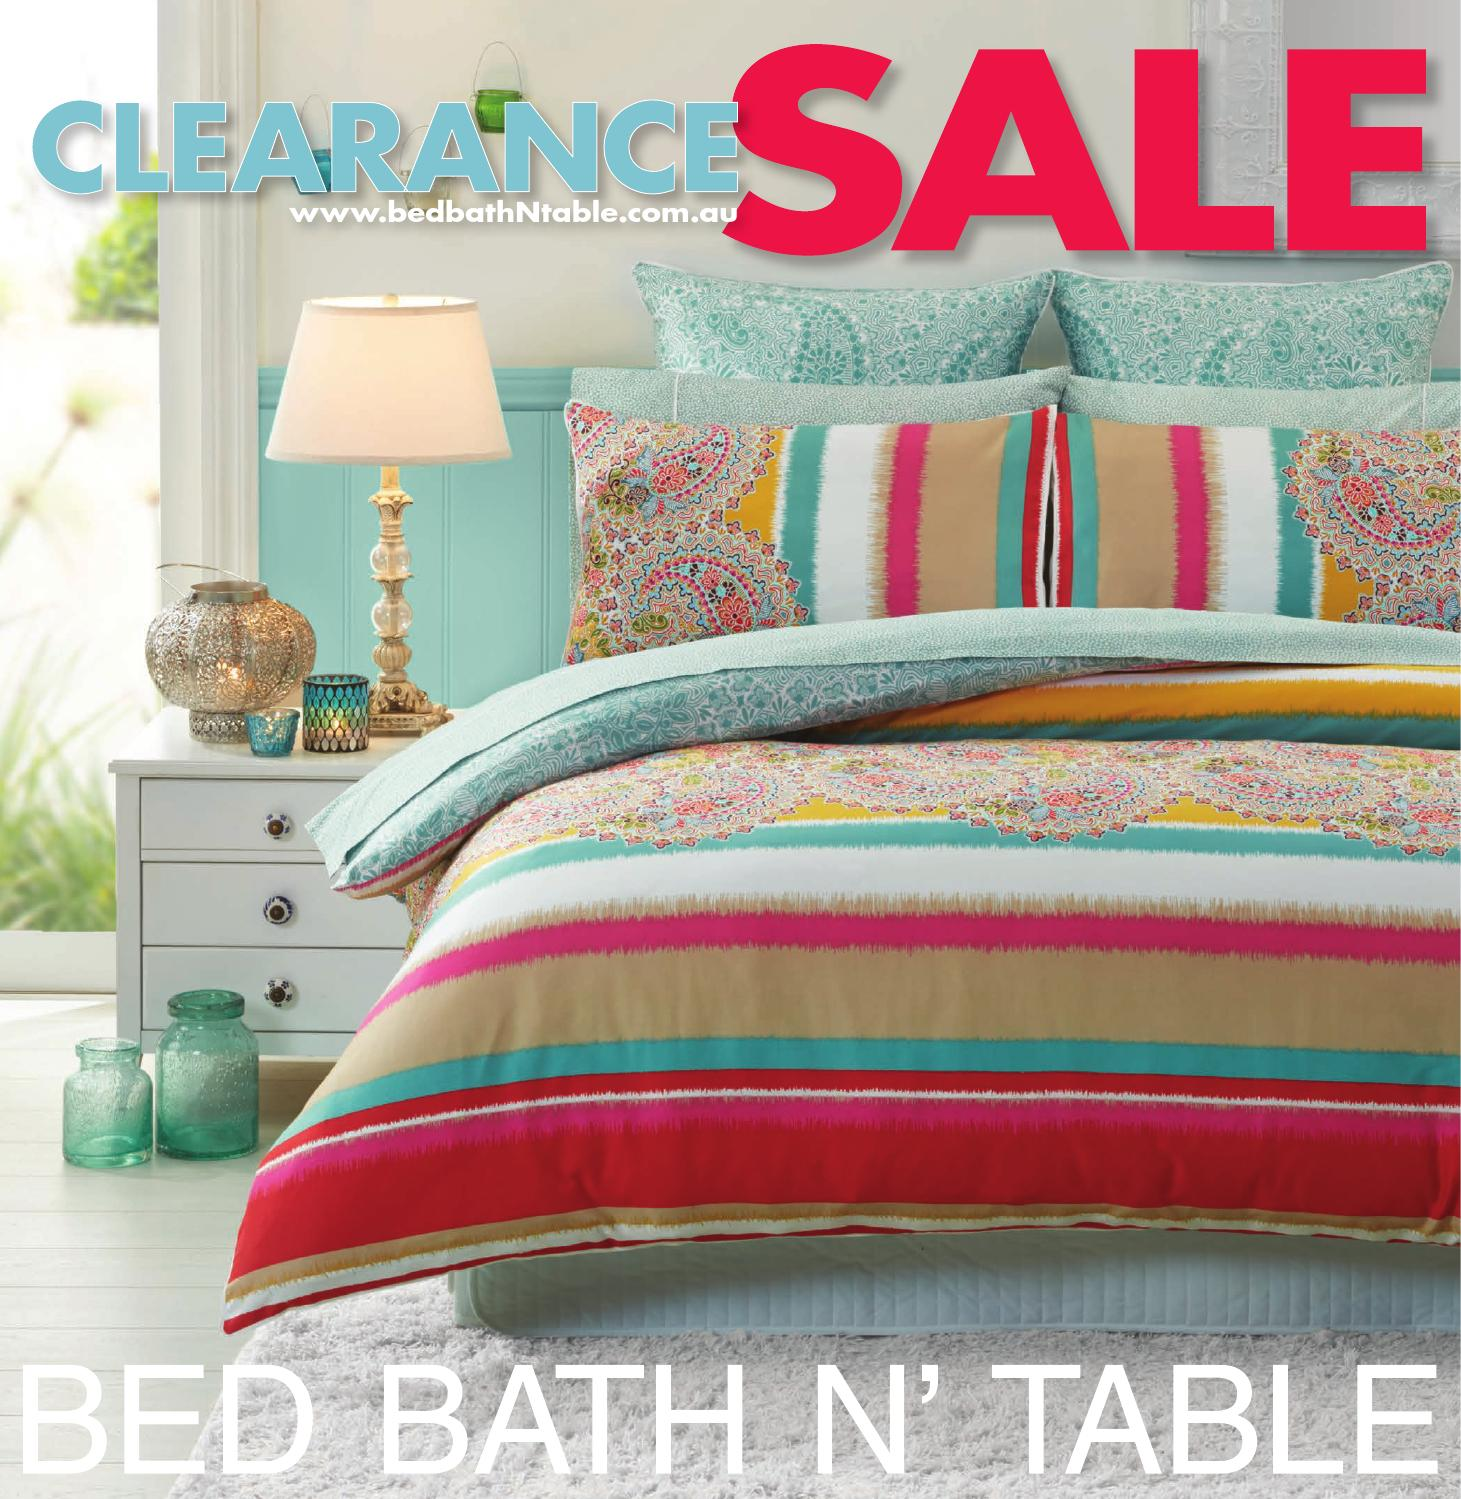 Bed Bath N Table Clearance Sale Catalogue By Bed Bath N